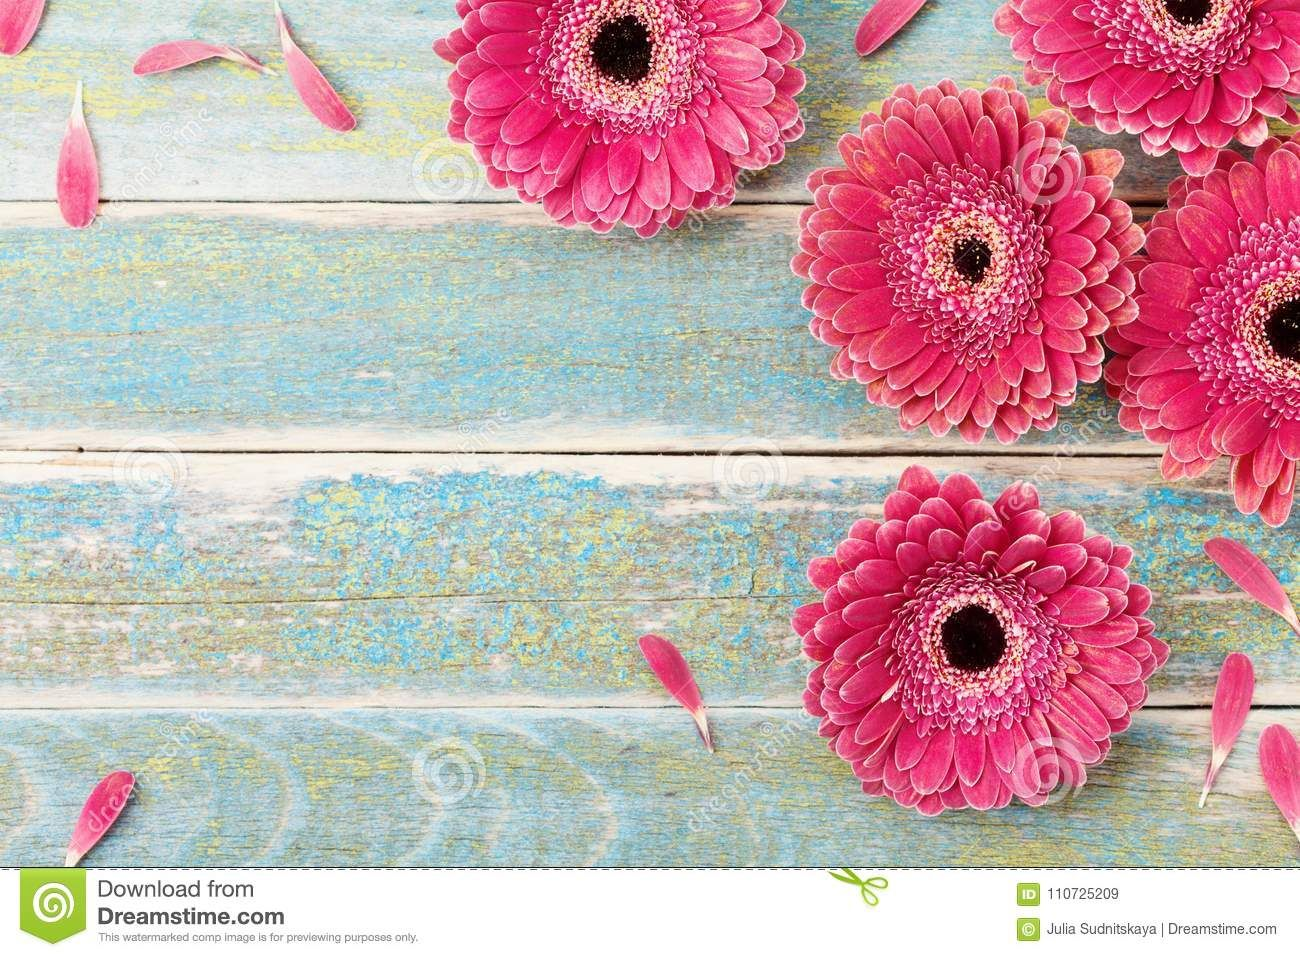 Gerbera Daisy Flower Greeting Card Background For Mother Or Womans Day Vintage Style Top View Gerbera Daisy Daisy Flower Gerbera